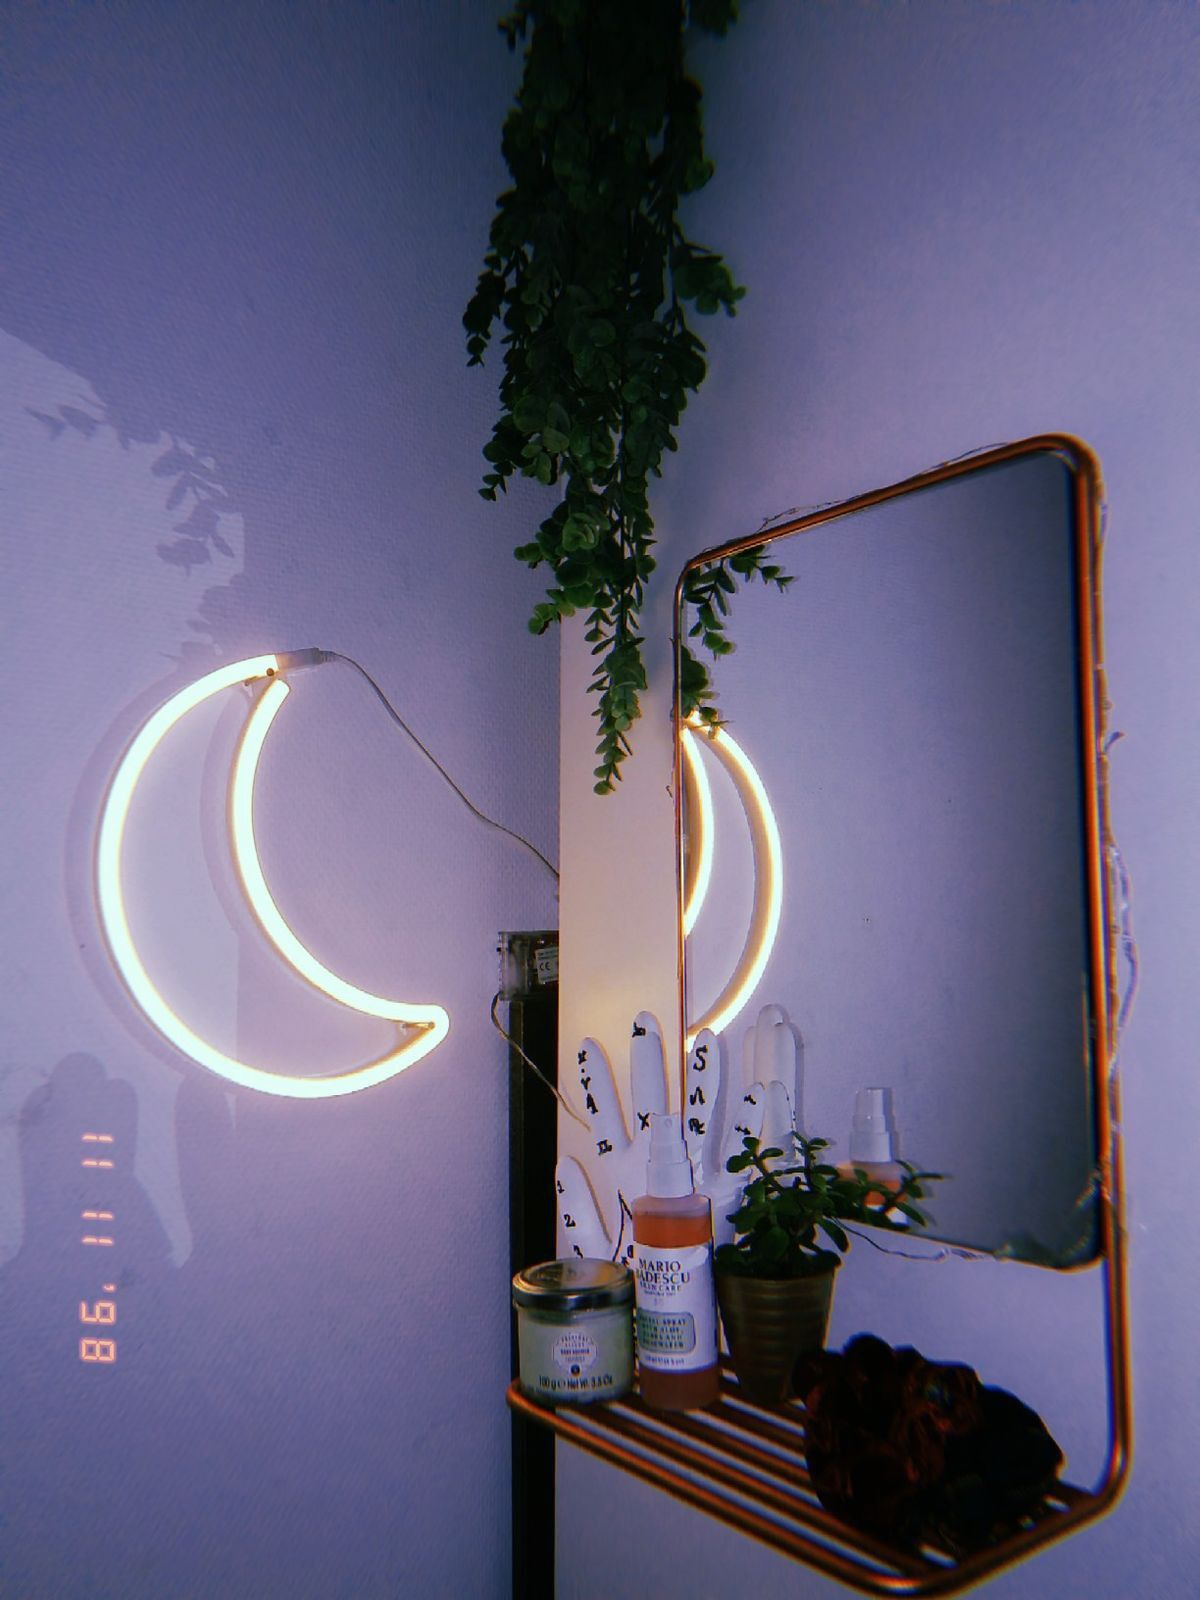 Vintage Neon Light Room Decor Bedroom Inspiration Aesthetic